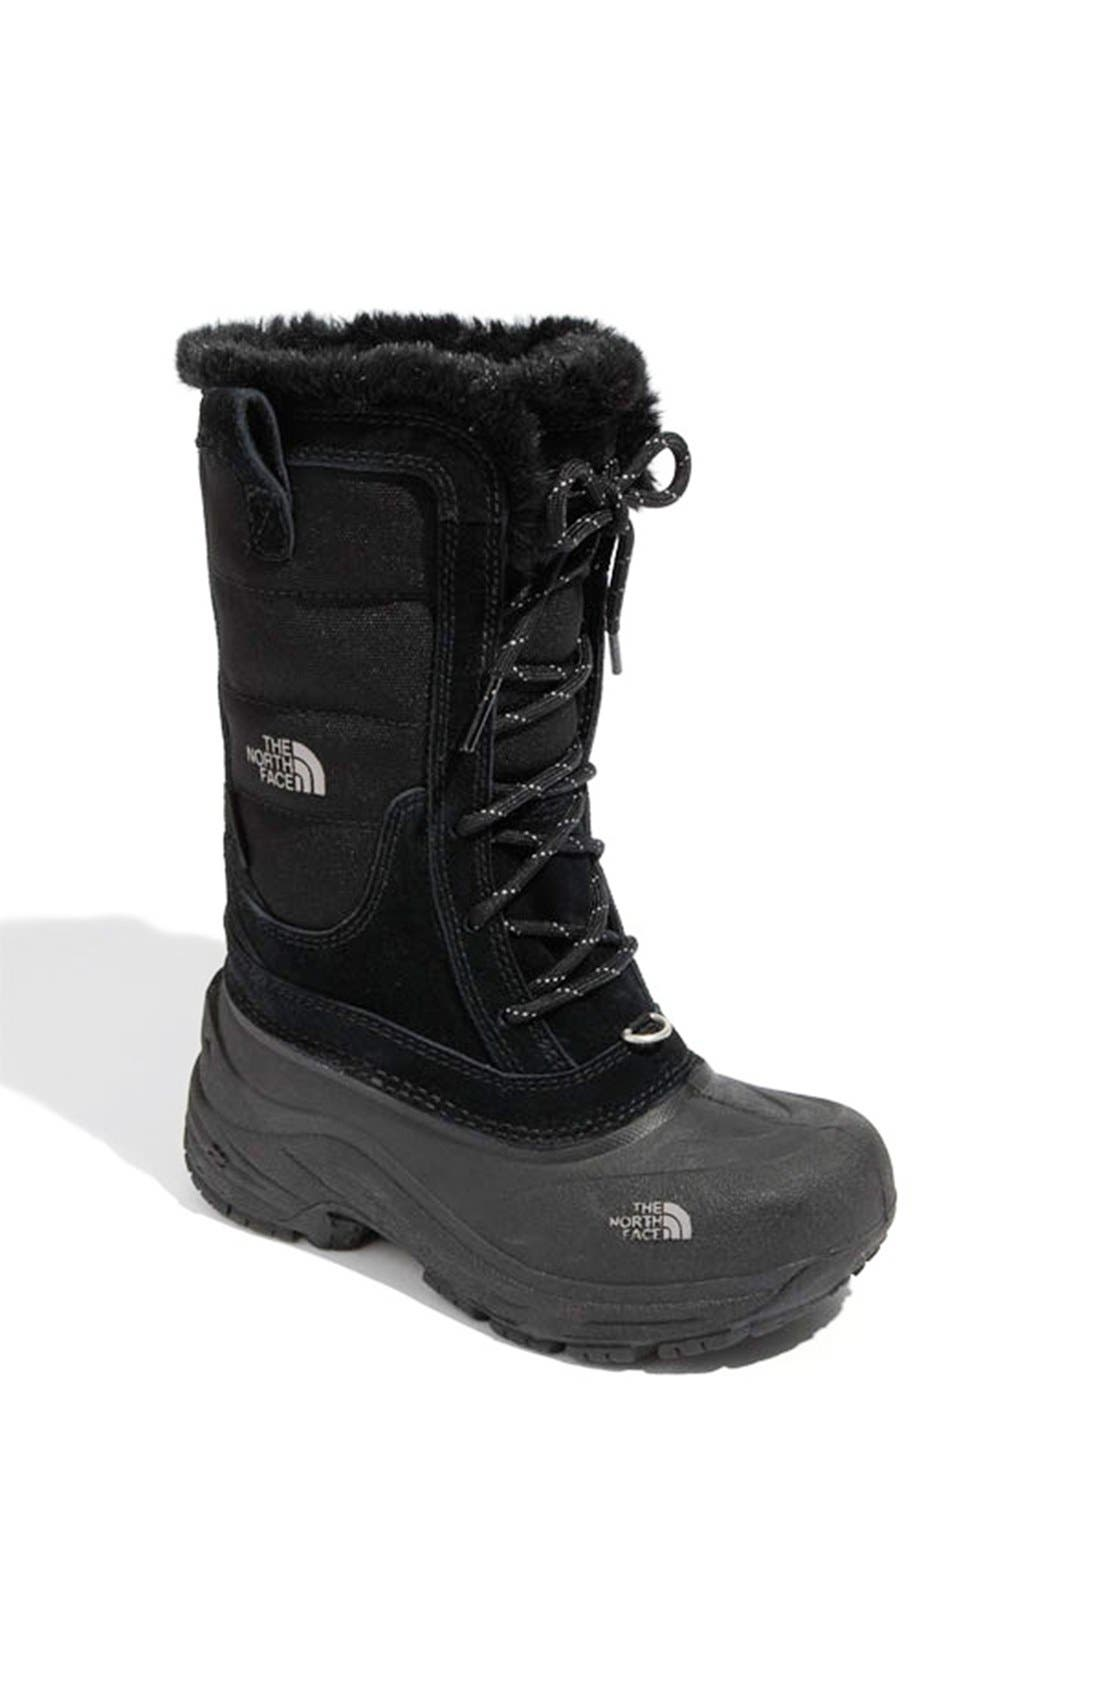 Main Image - The North Face 'Shellista' Boot (Toddler, Little Kid & Big Kid)